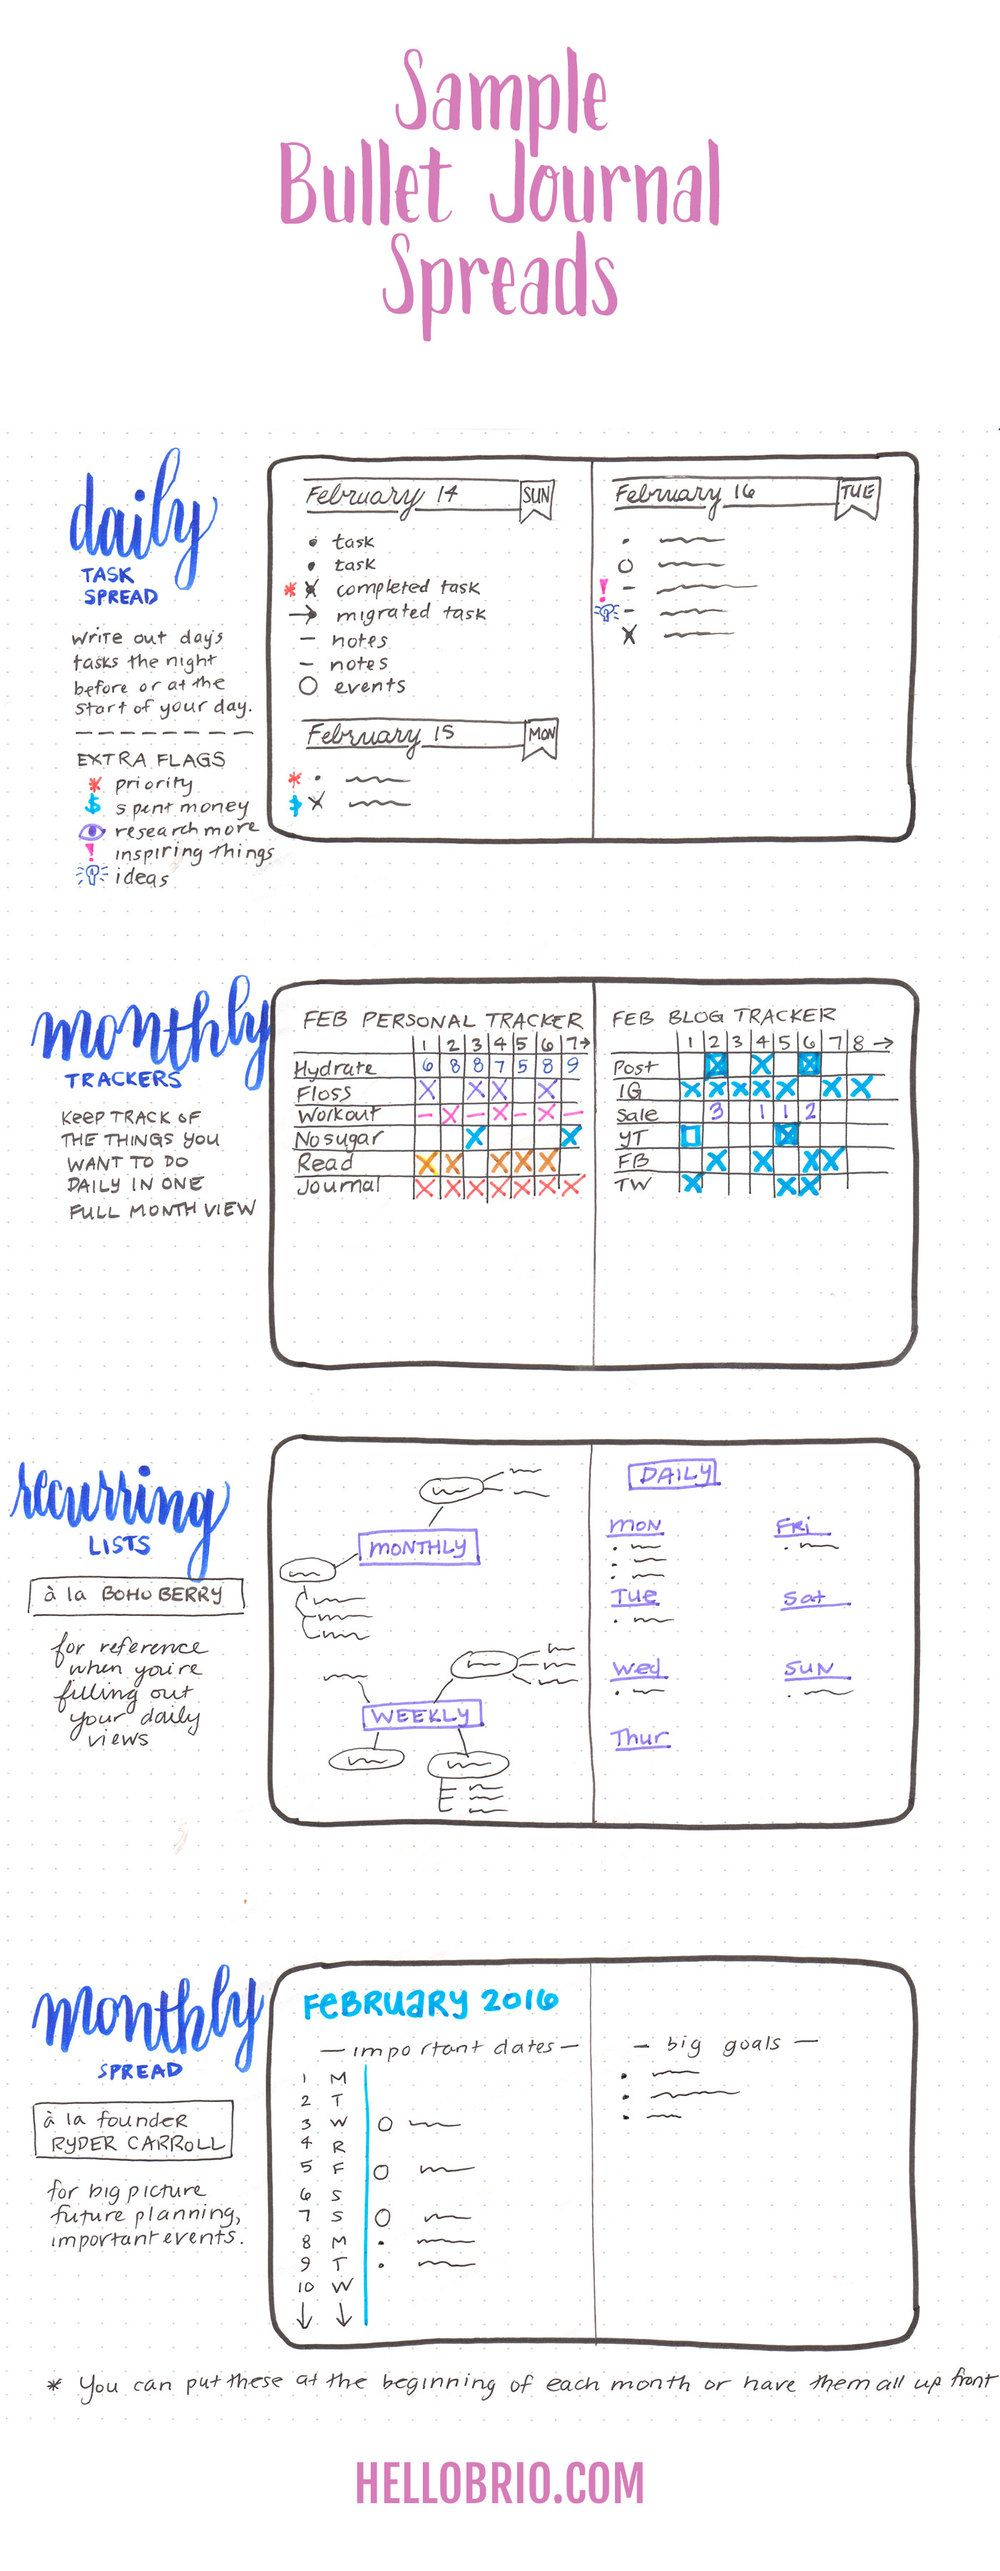 Bullet journaling: what it is and why it's so popular | Hello Brio